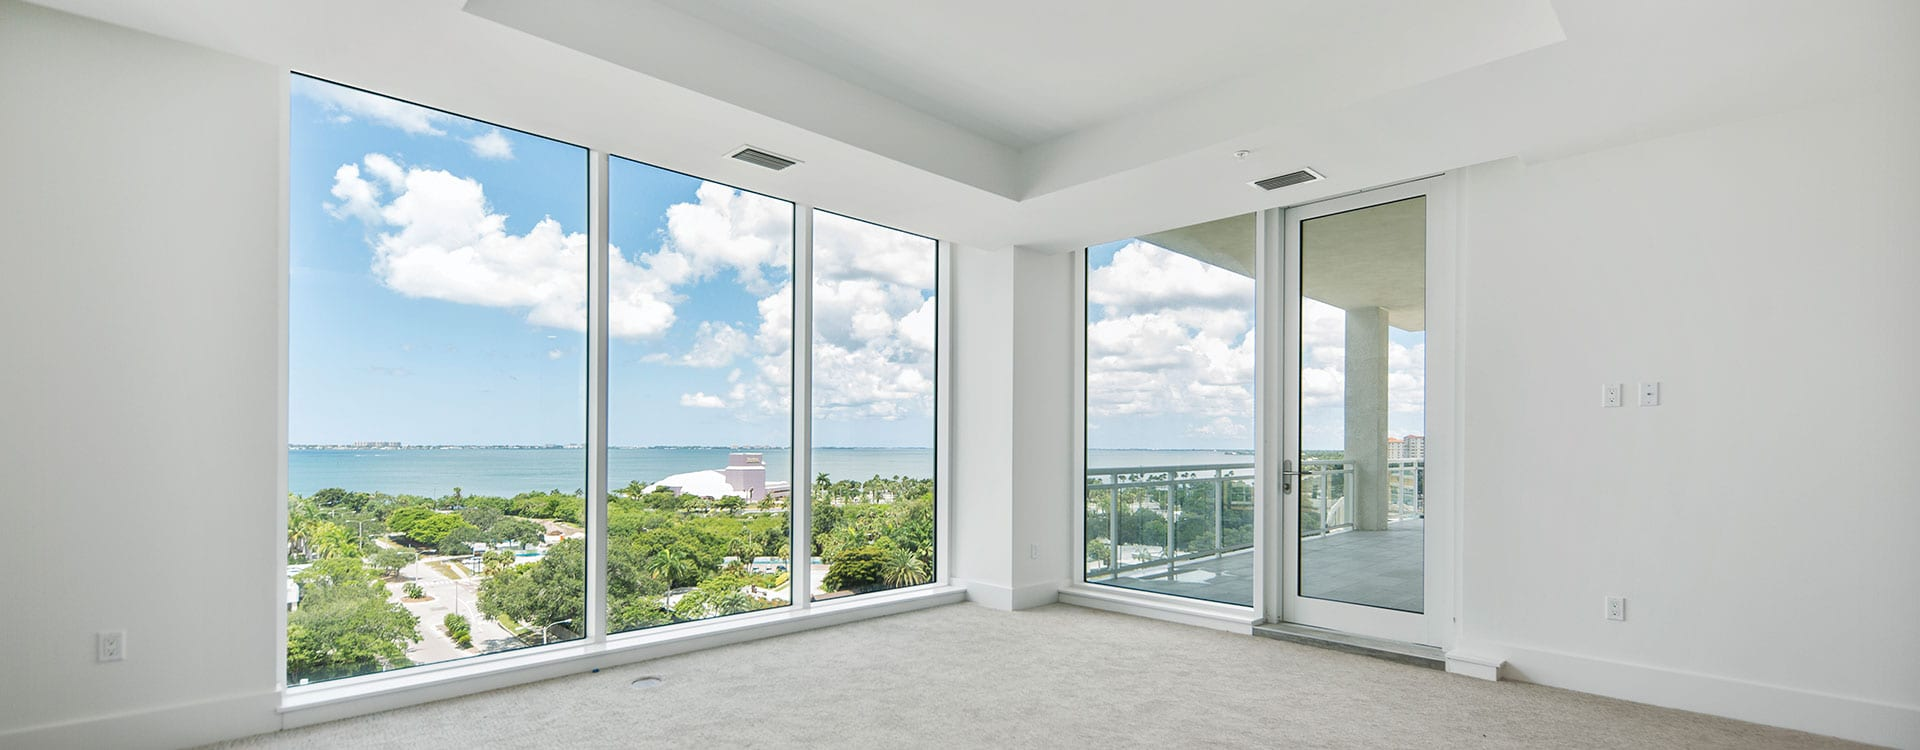 BLVD Sarasota Residence 901 Bedroom with a view of the Van Wezel and Terrace